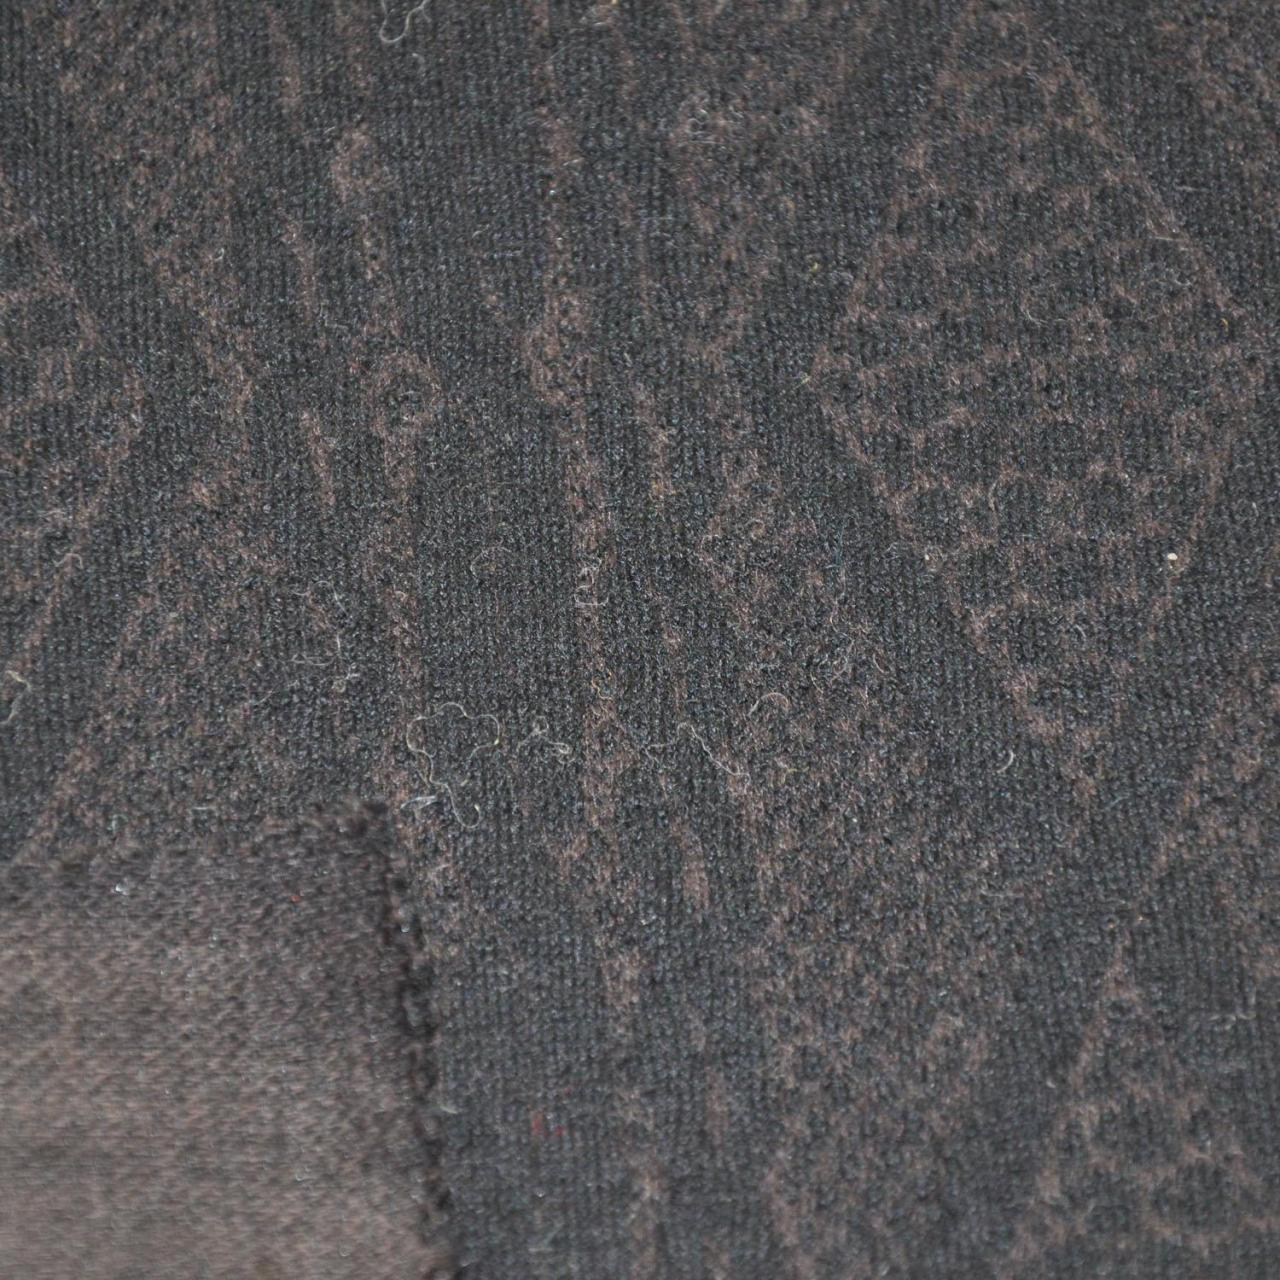 KnitJacquardFabric RT10005943